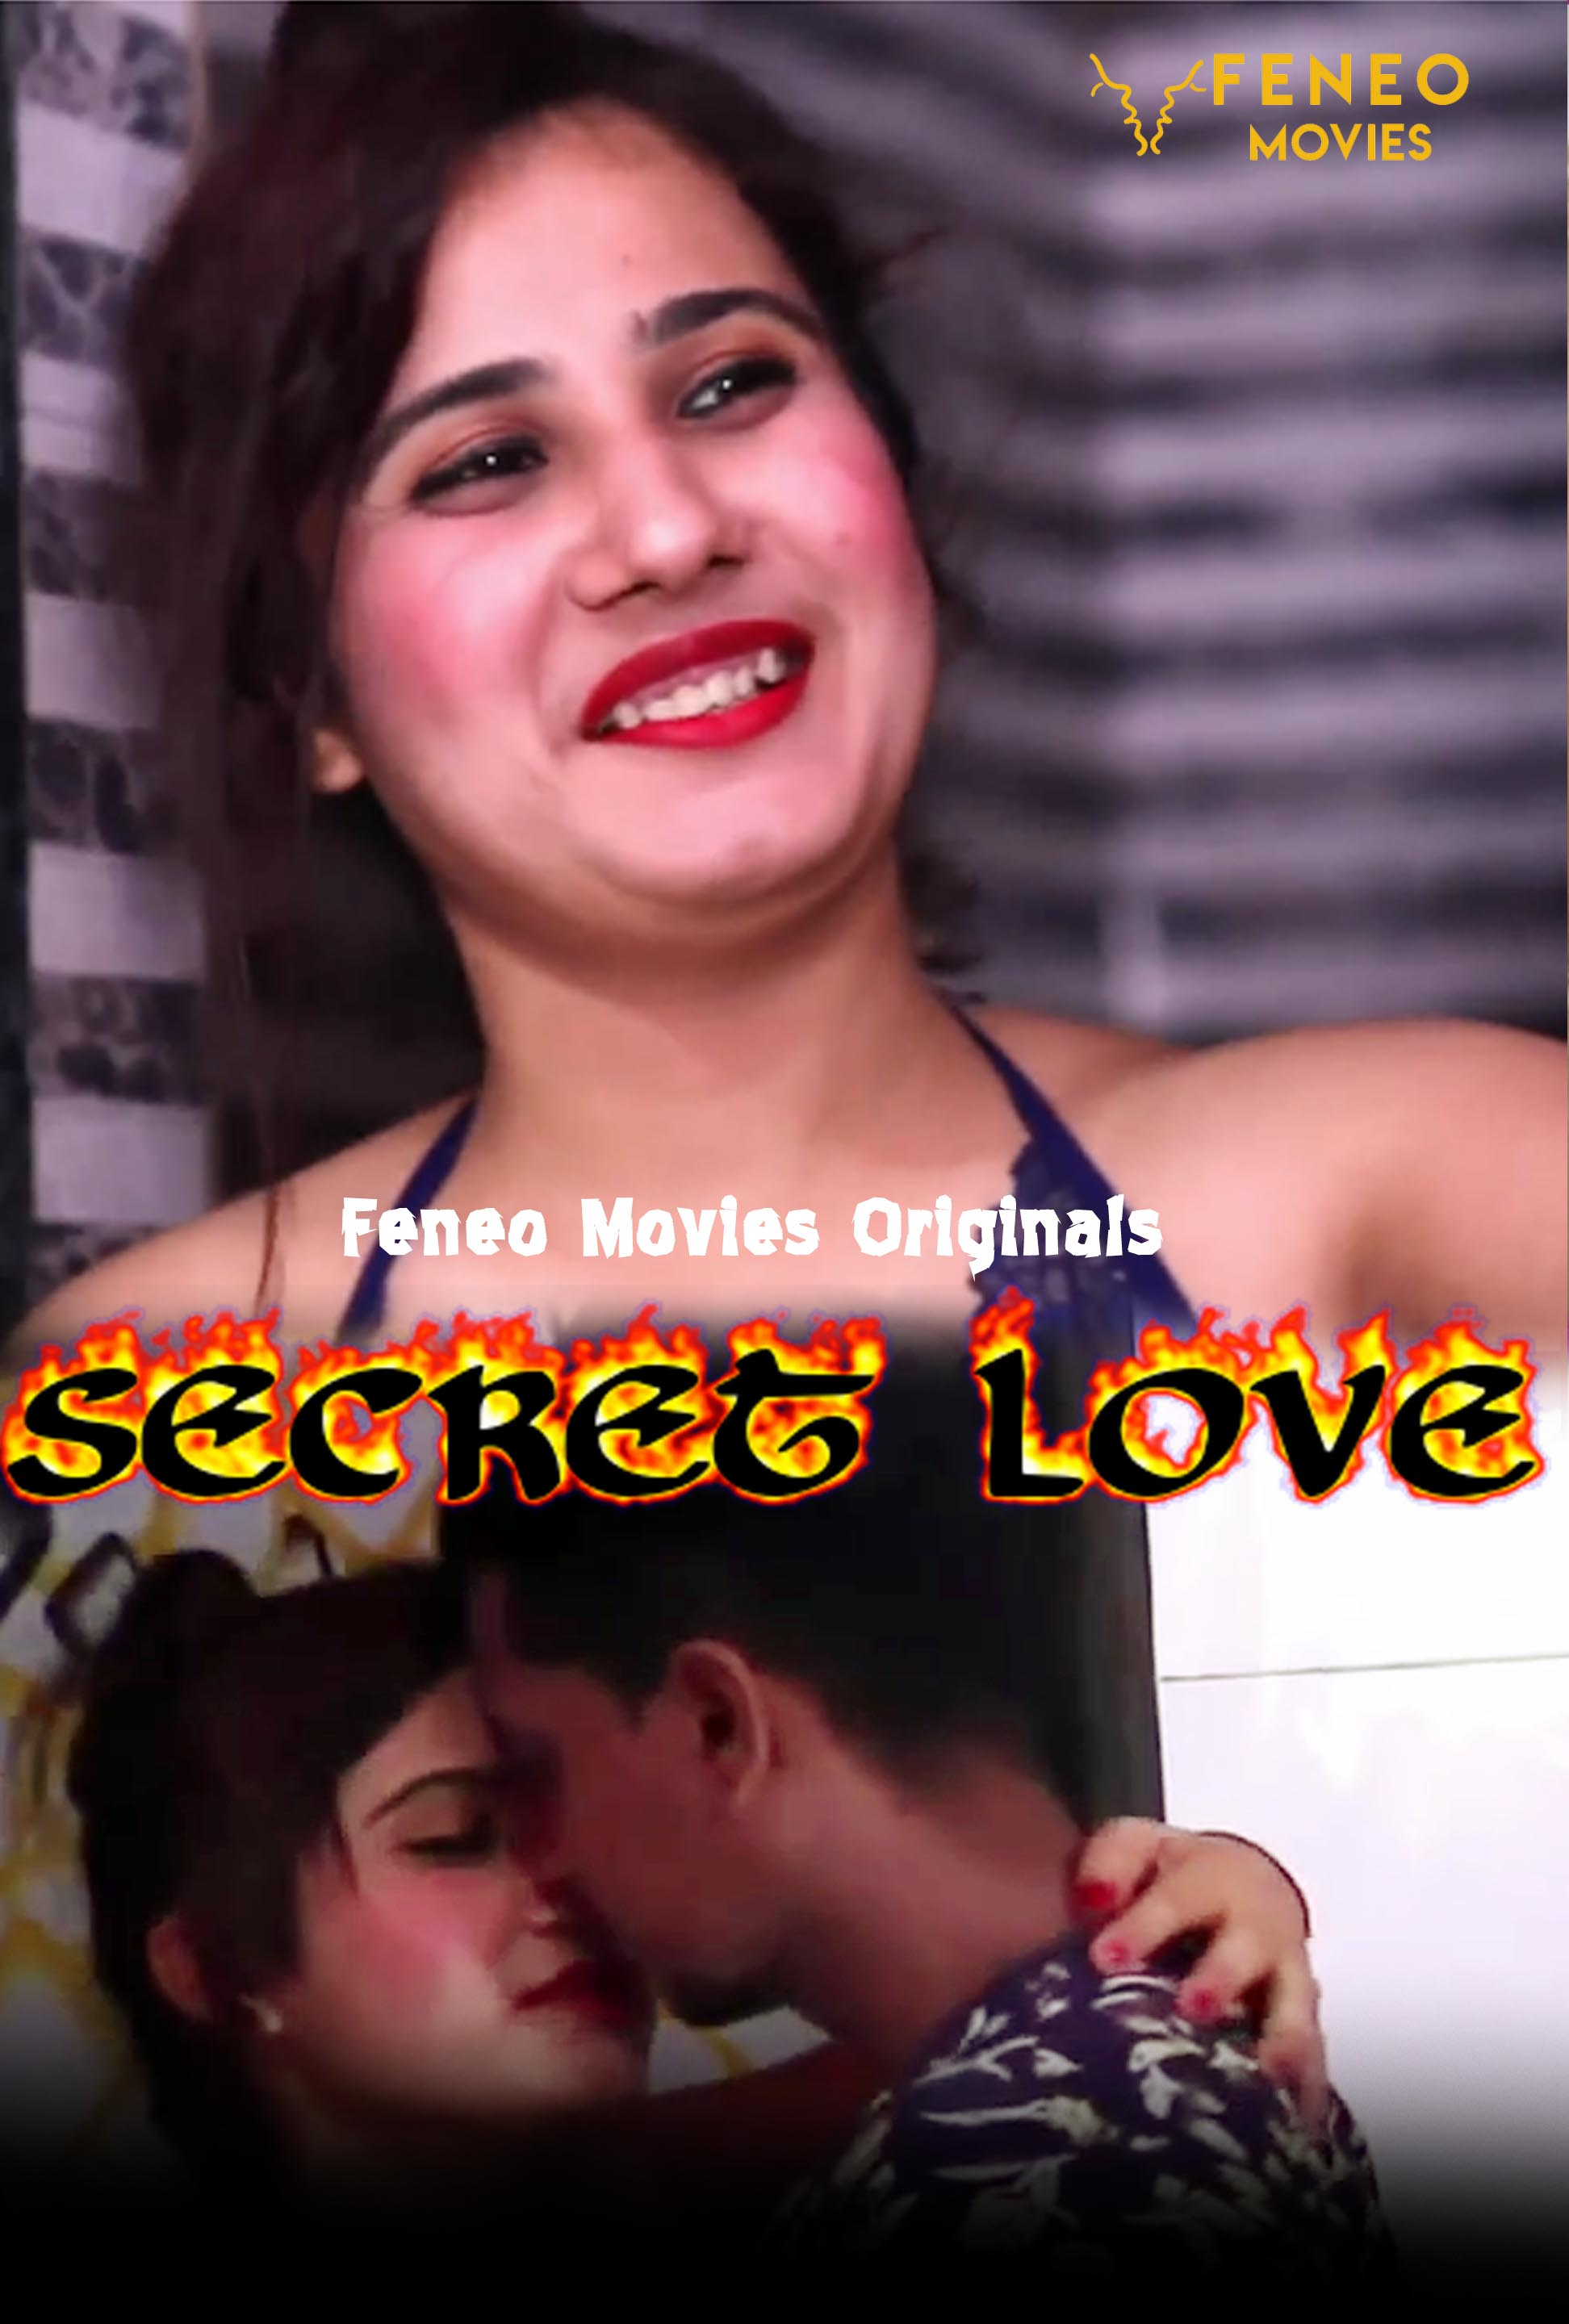 Secret Love (2020) S01E01 Hindi Feneomovies Original Web Series 720p HDRip 210MB Download